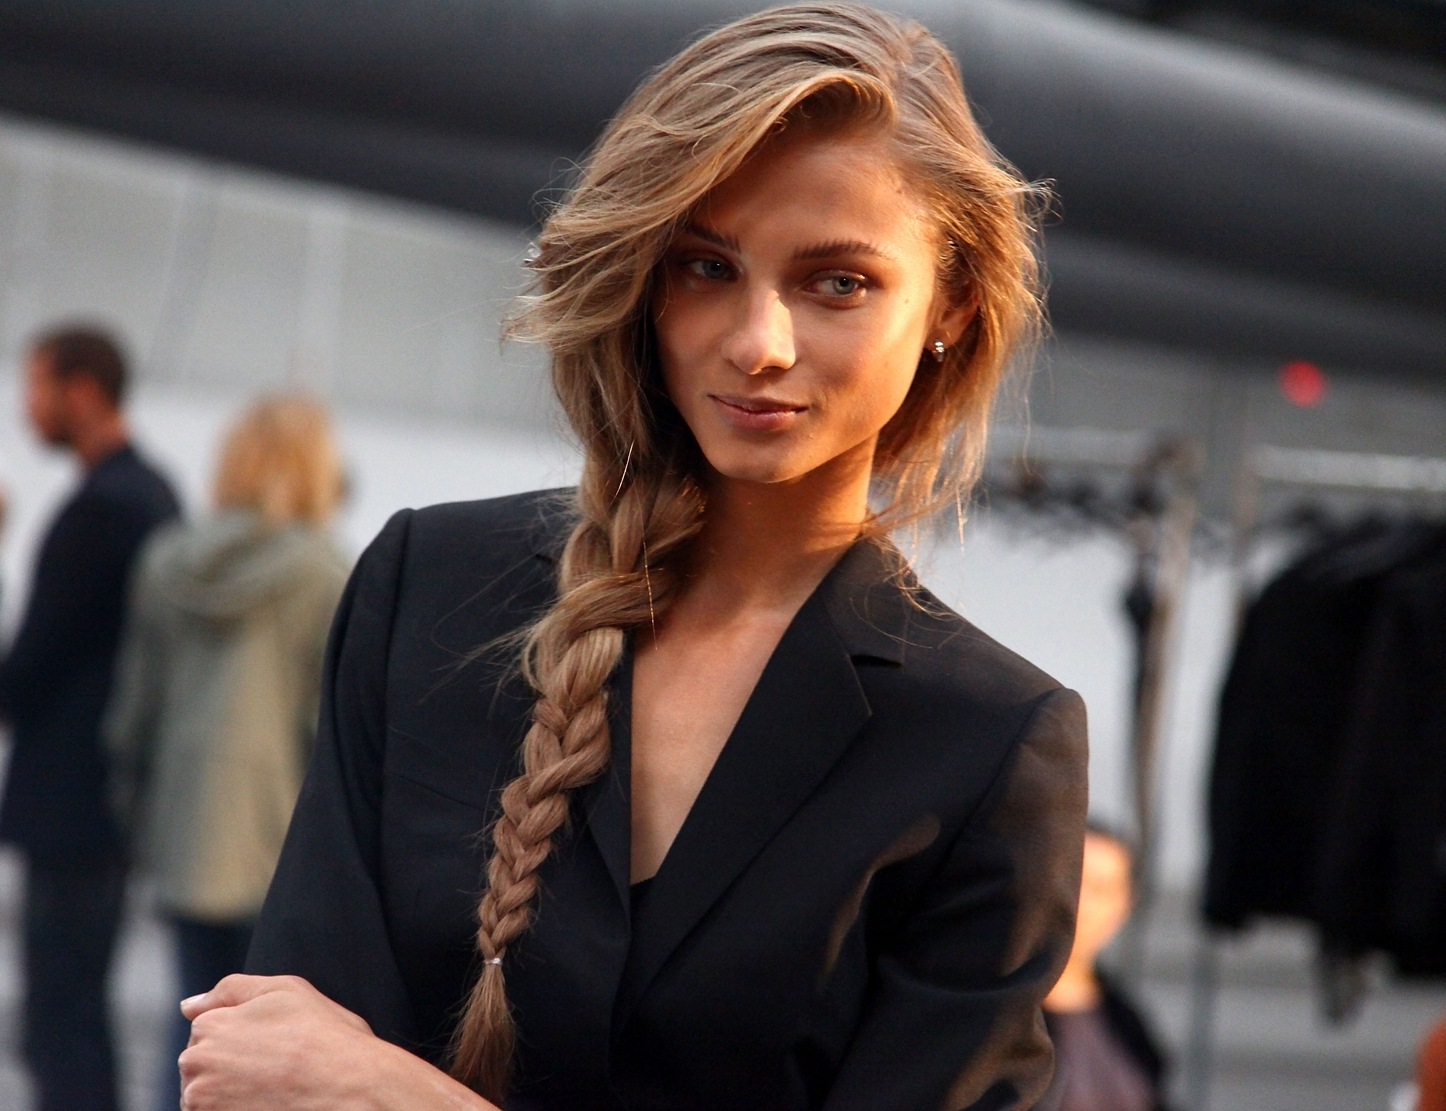 Hairstyles For Dummy: How To Do A Messy Side Braid For Popular Simple Messy Side Ponytail Hairstyles (View 15 of 20)